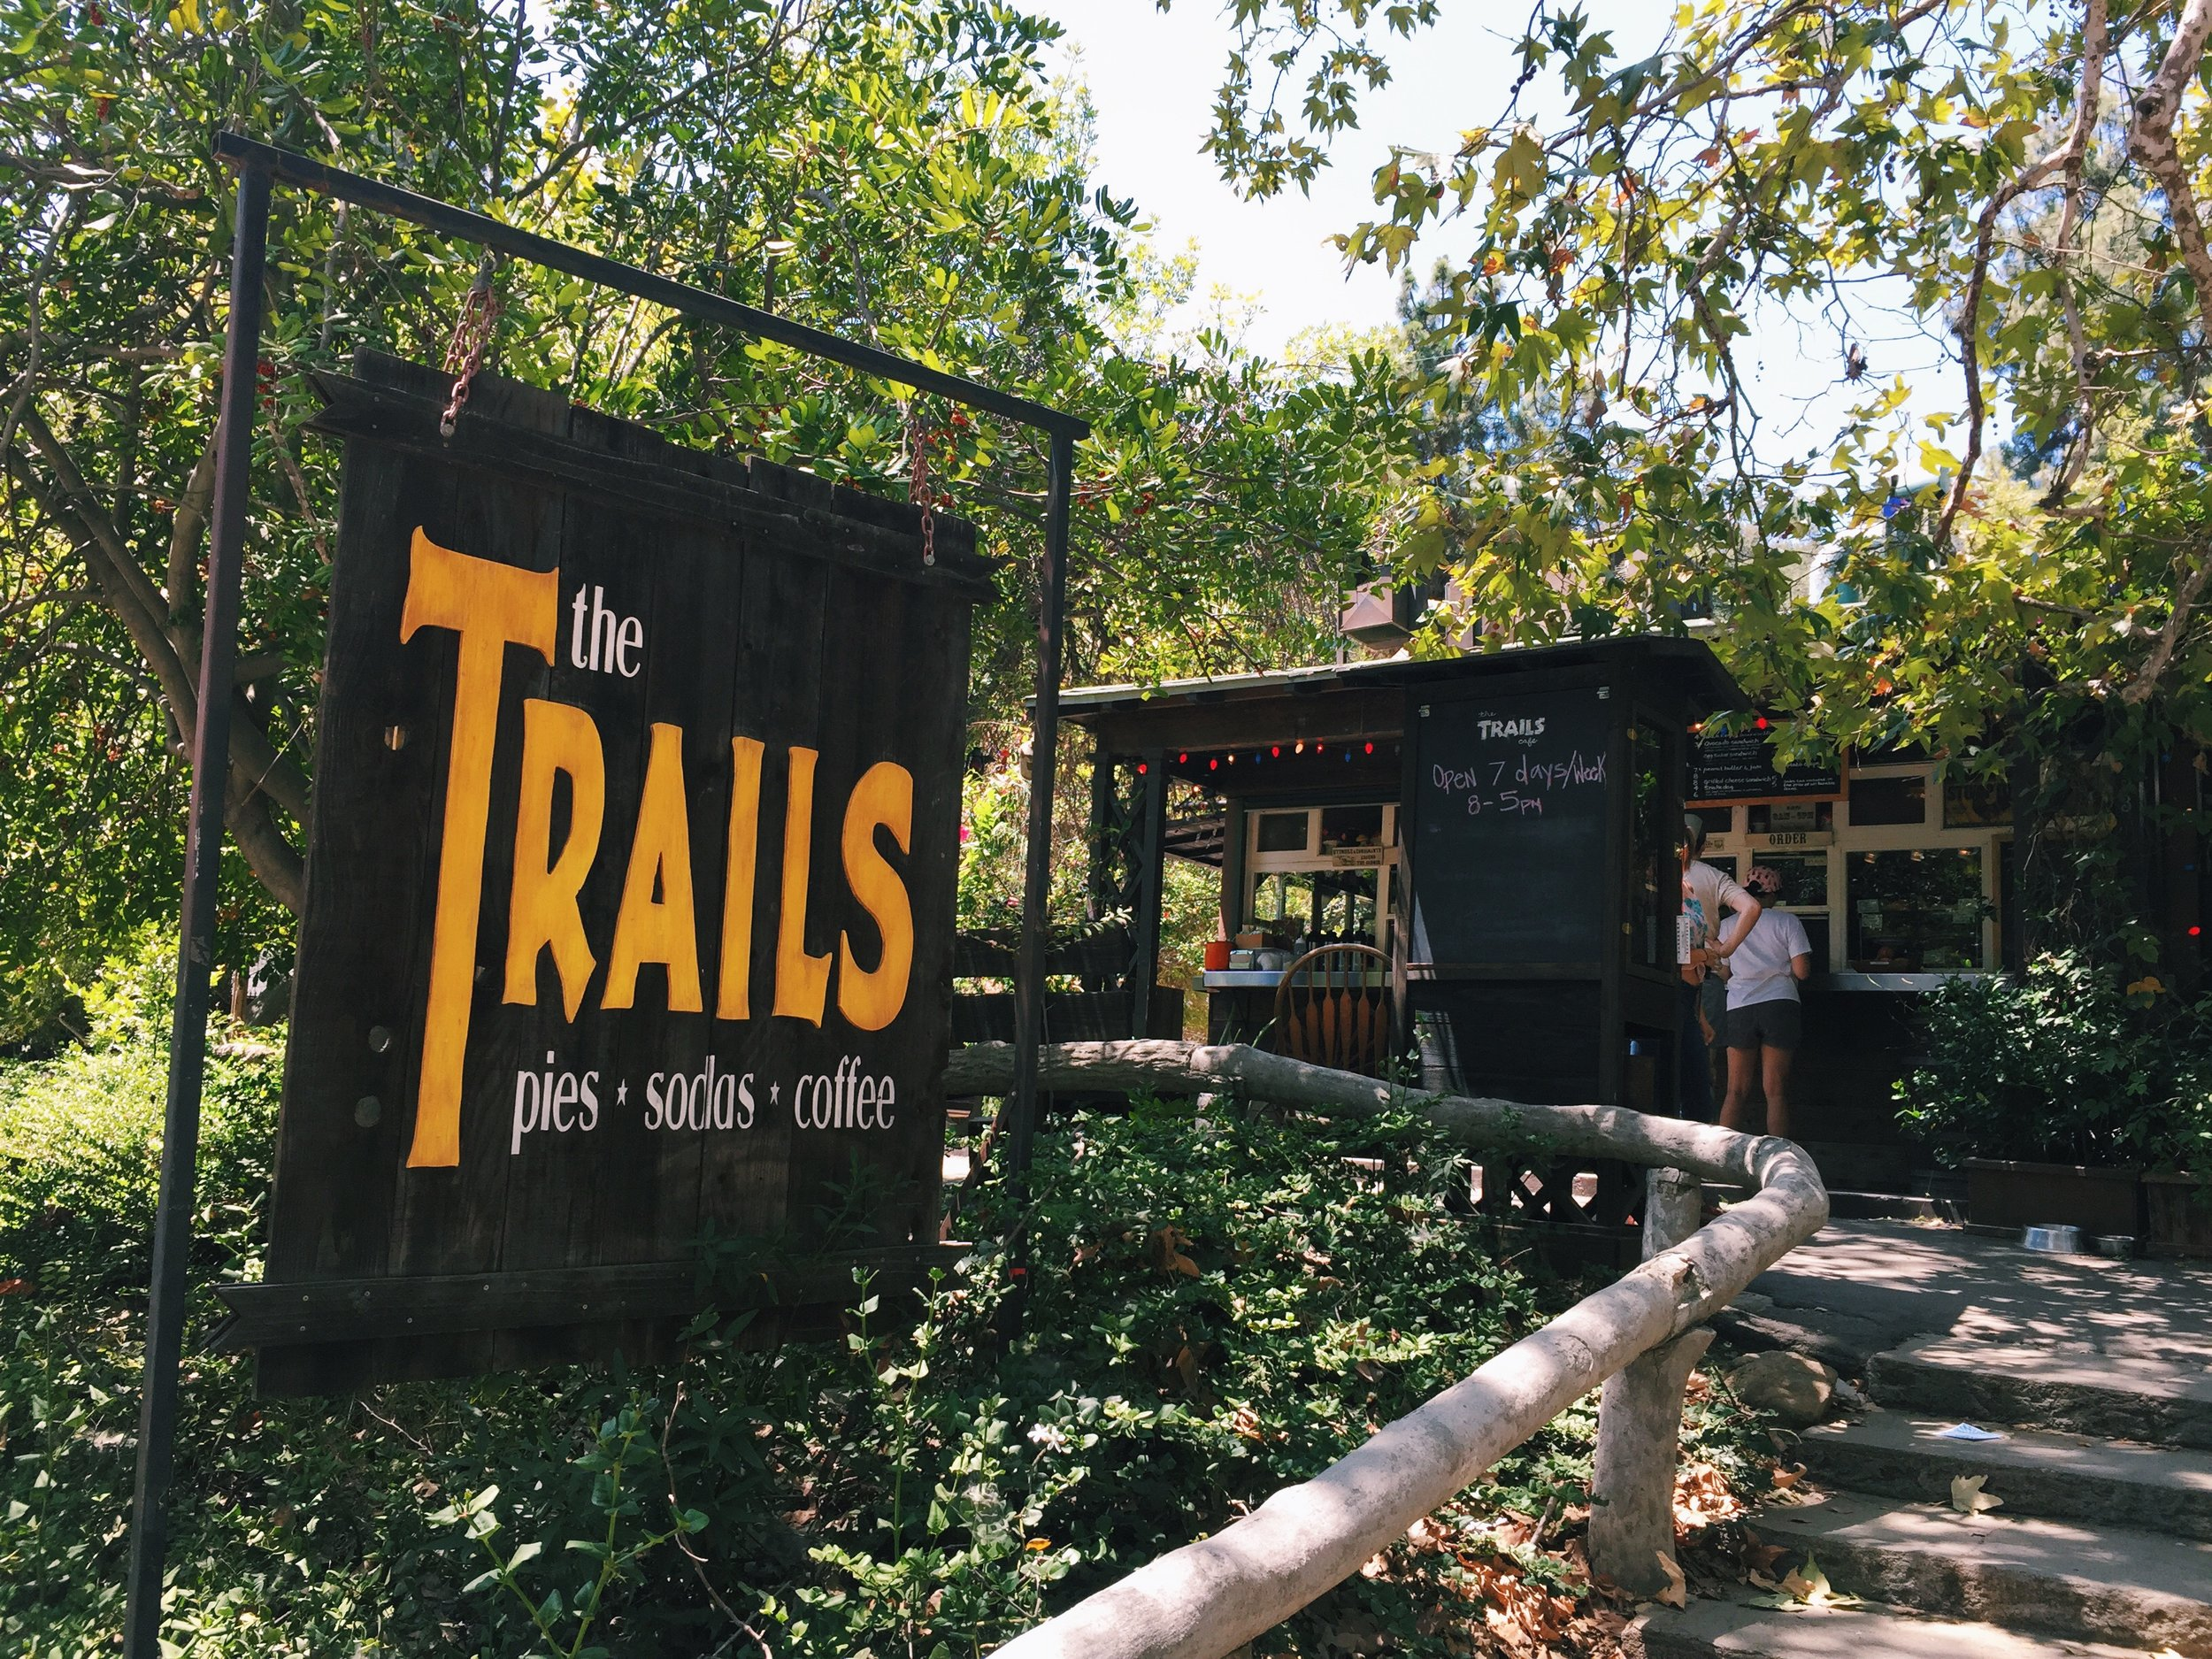 trails-caffe-griffith